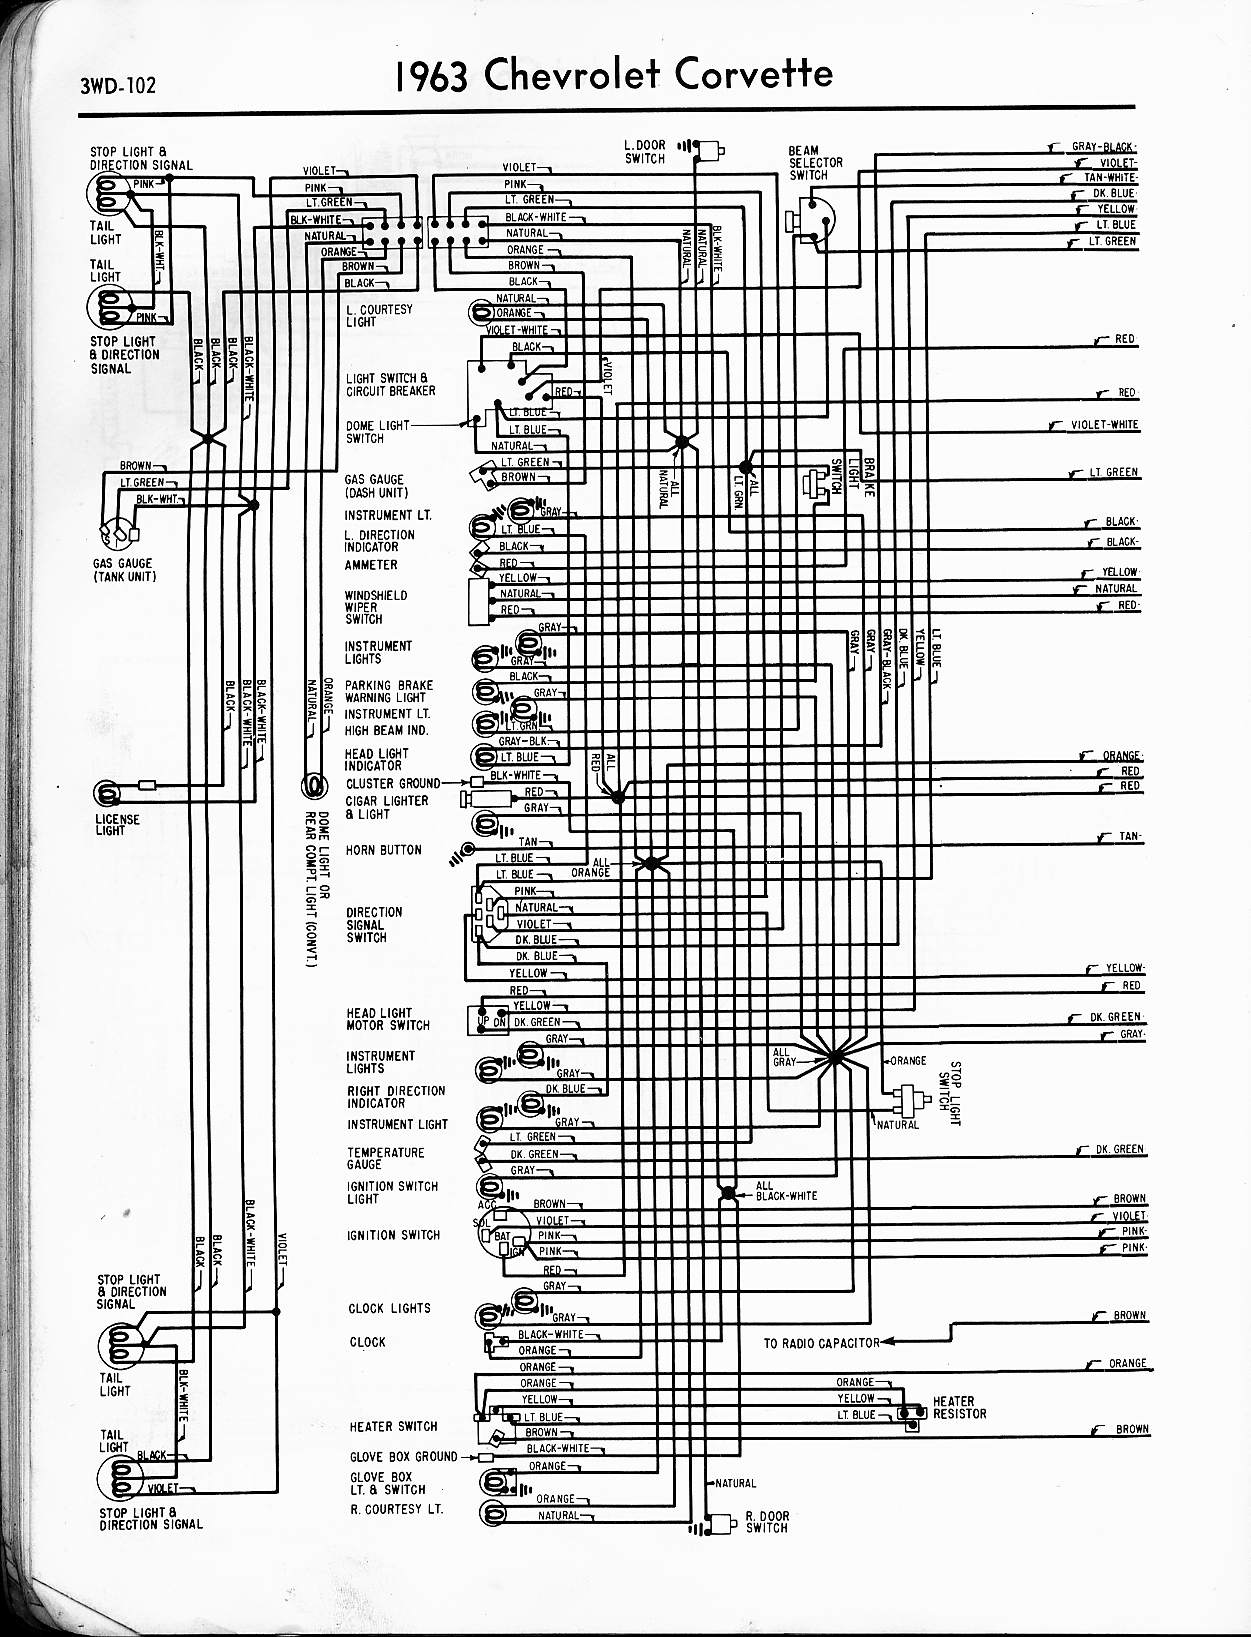 1964 impala fuse panel diagram basic wiring diagram u2022 rh rnetcomputer co